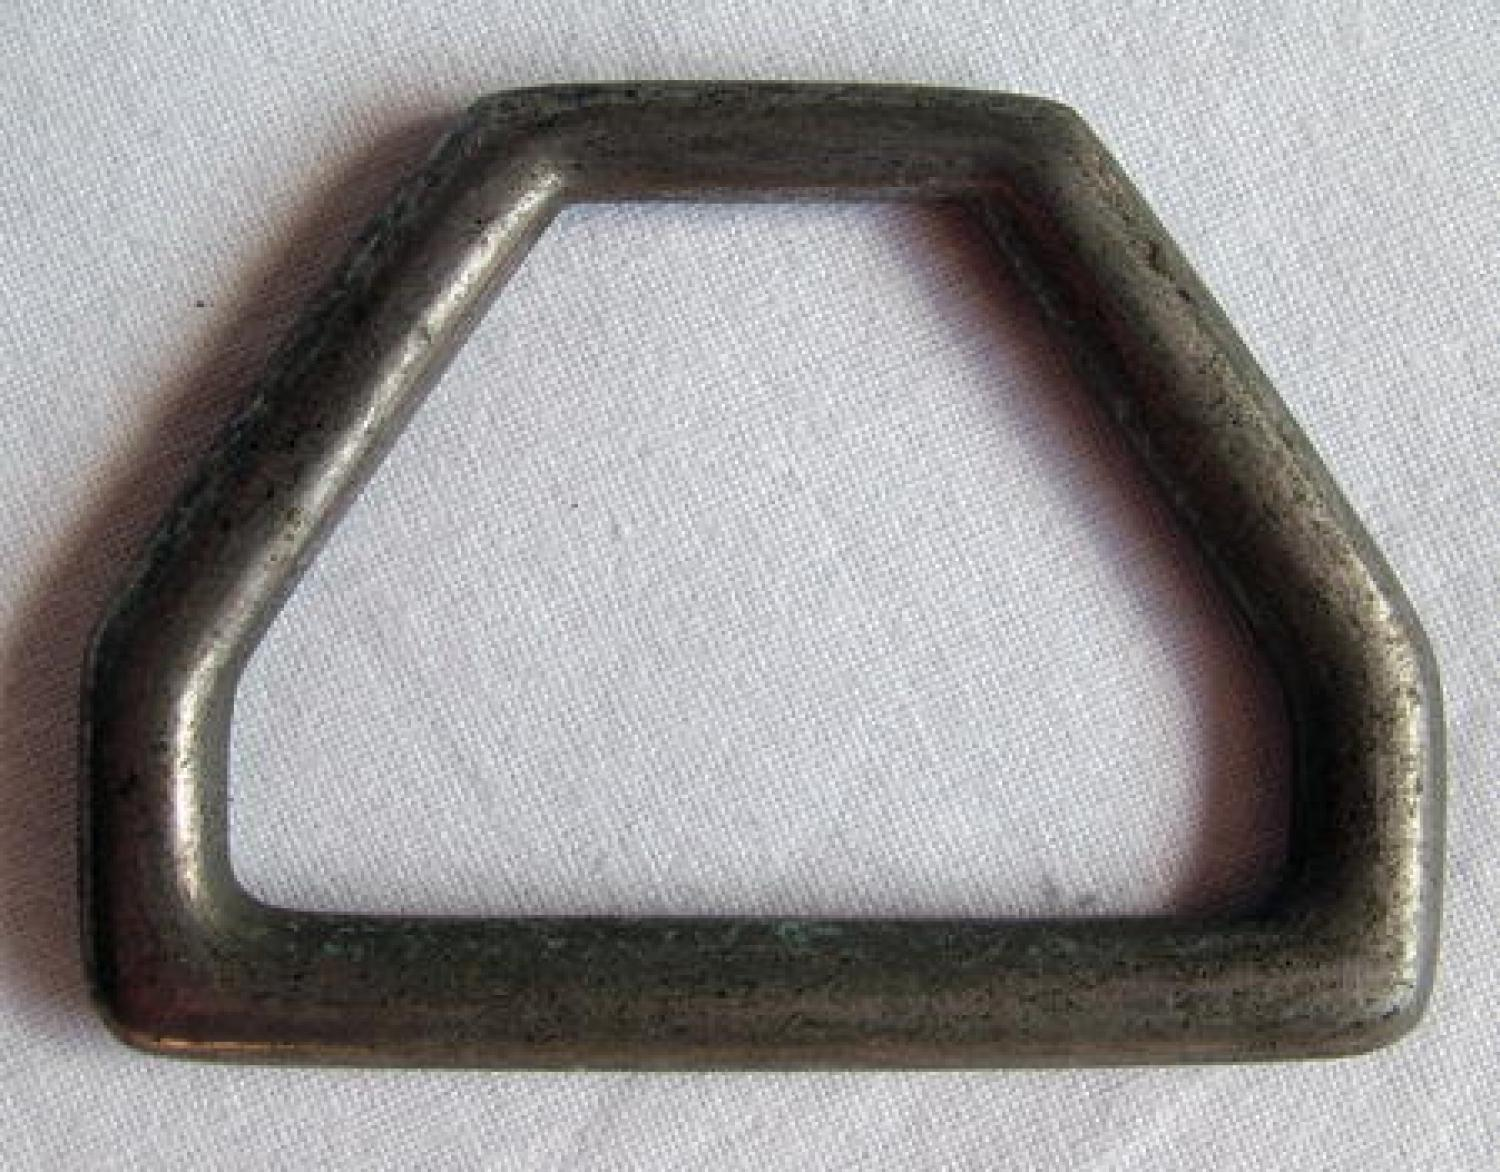 R.A.F. Parasuit Anchorage 'Ring'